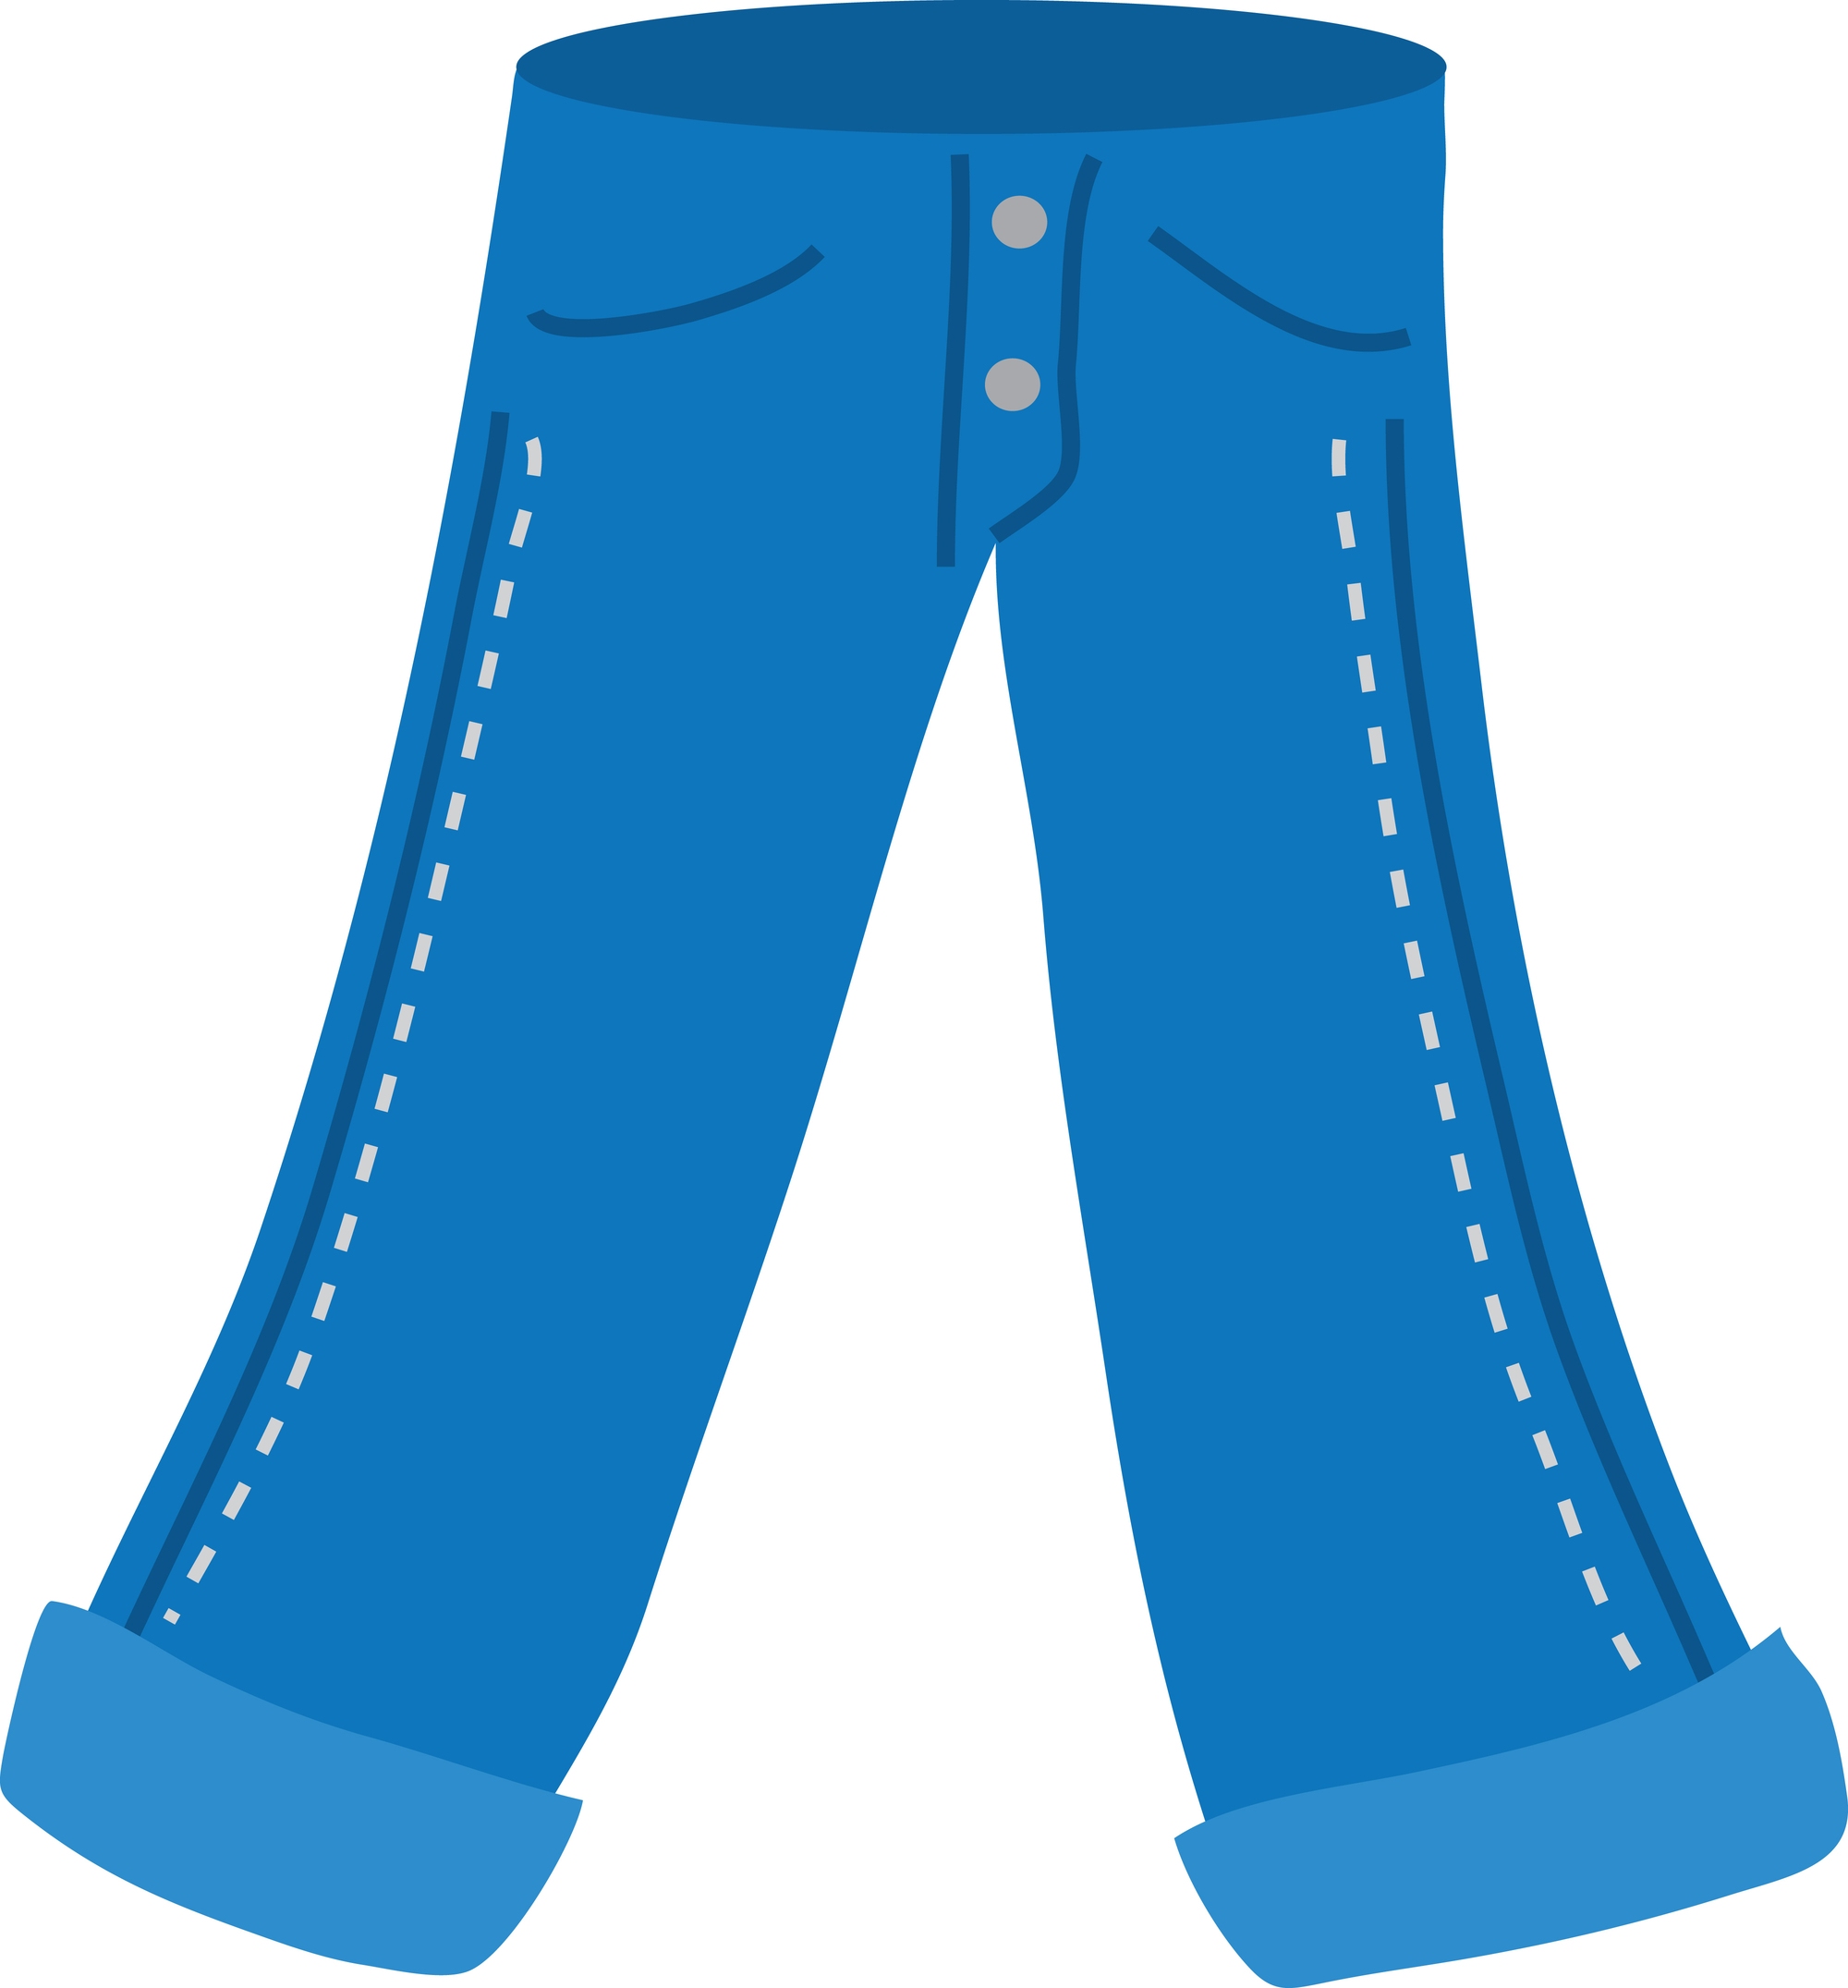 Jeans clipart. Denim